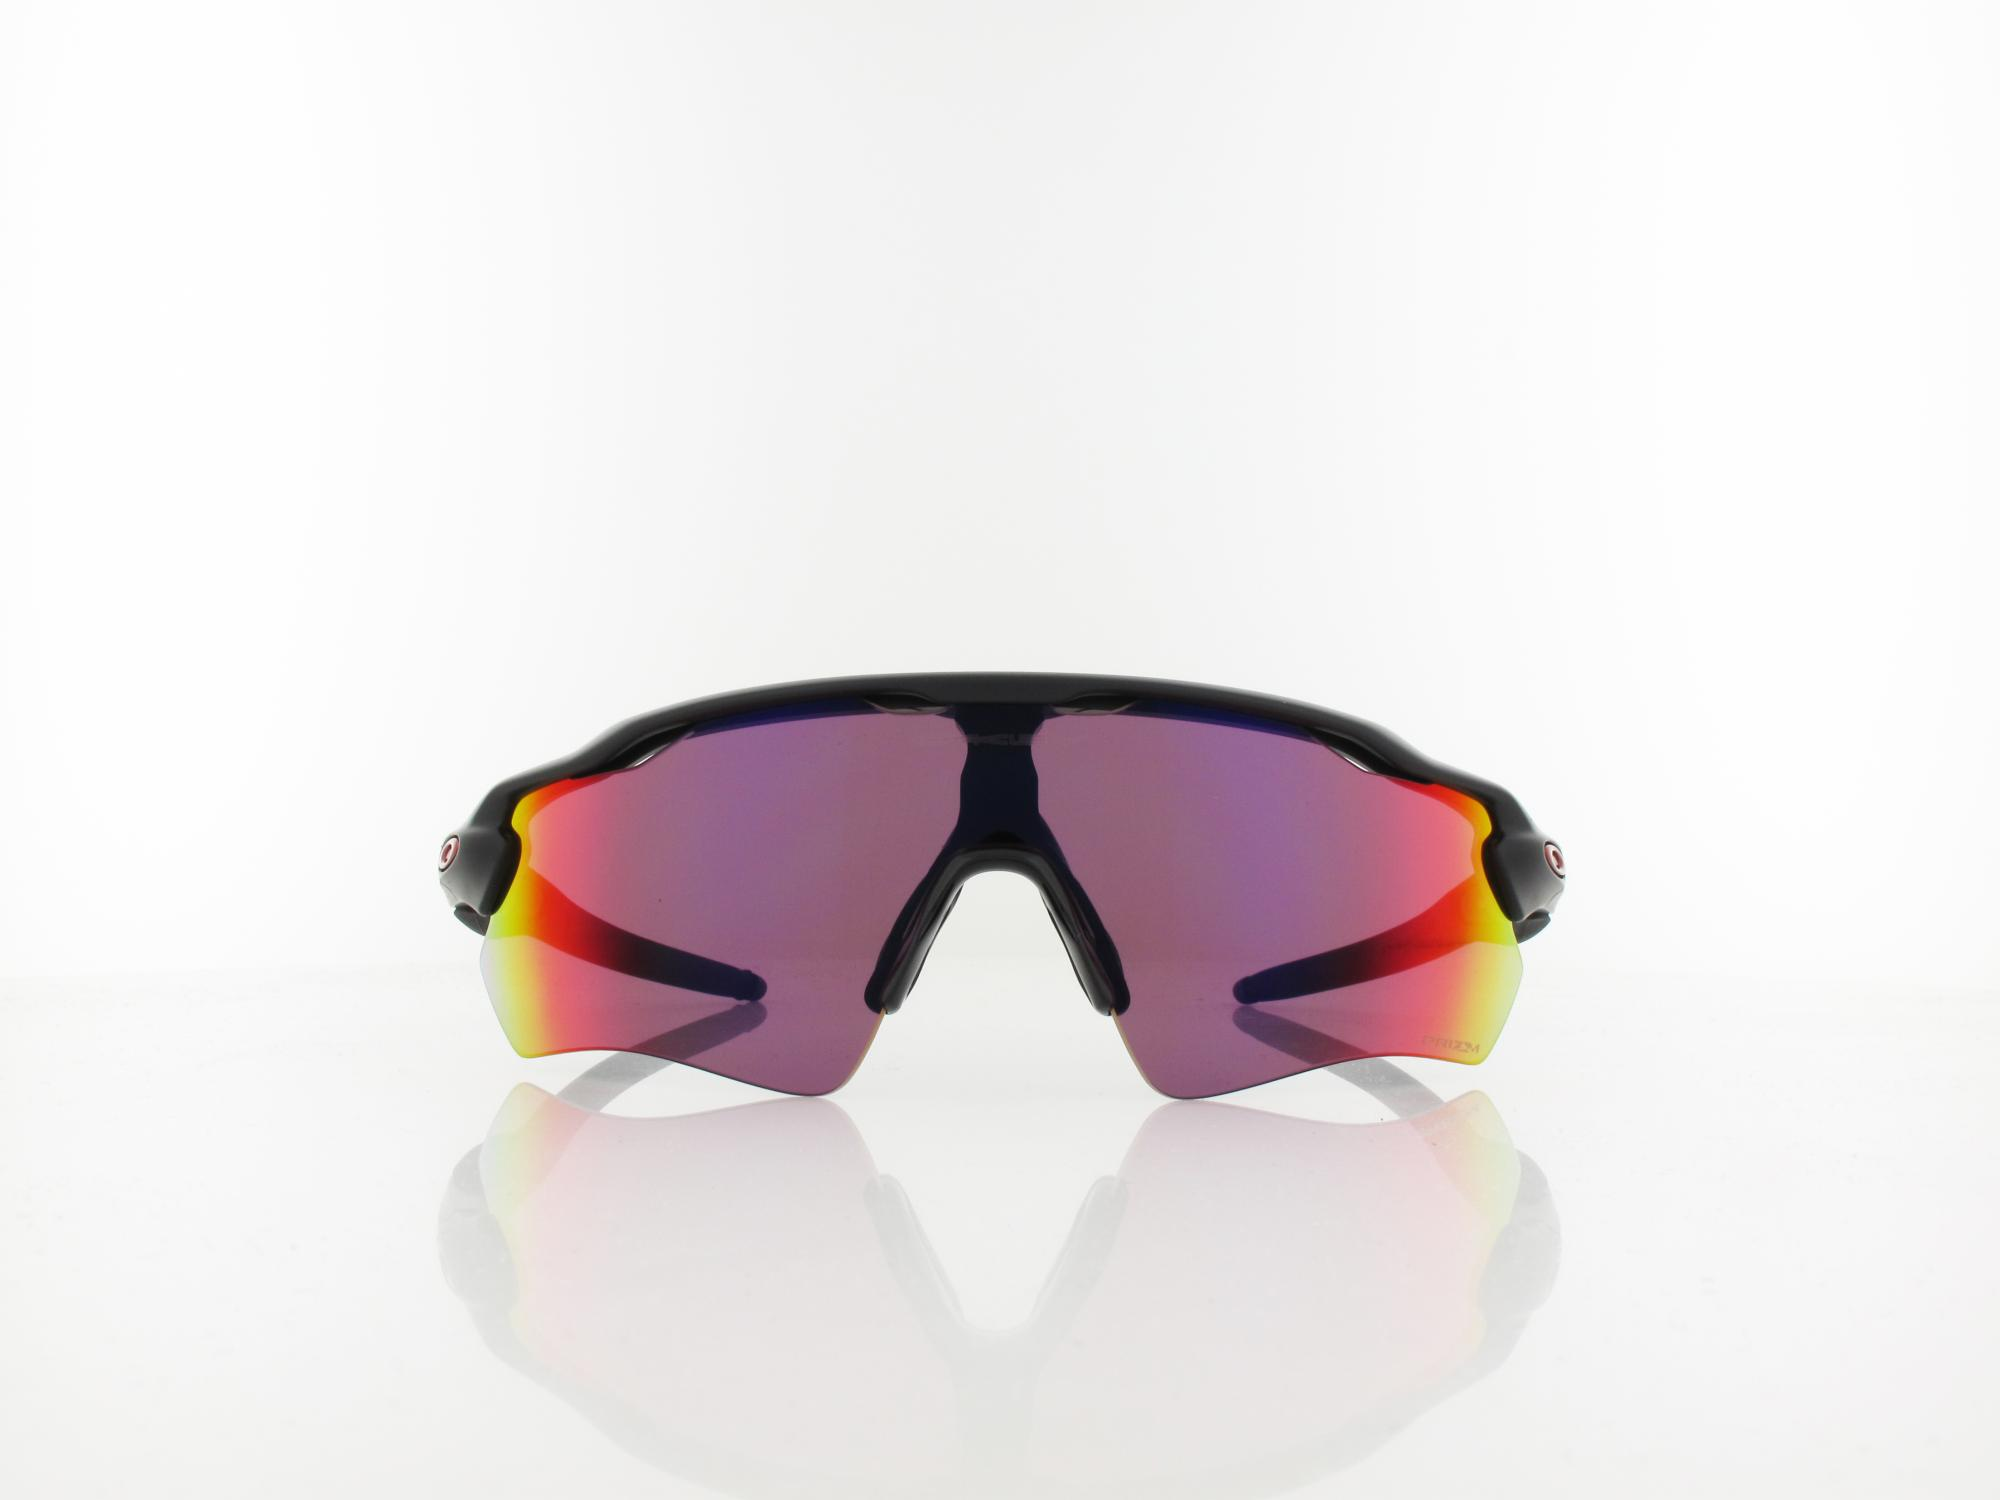 Oakley | OO9208 46 138 | matte black / prizm road